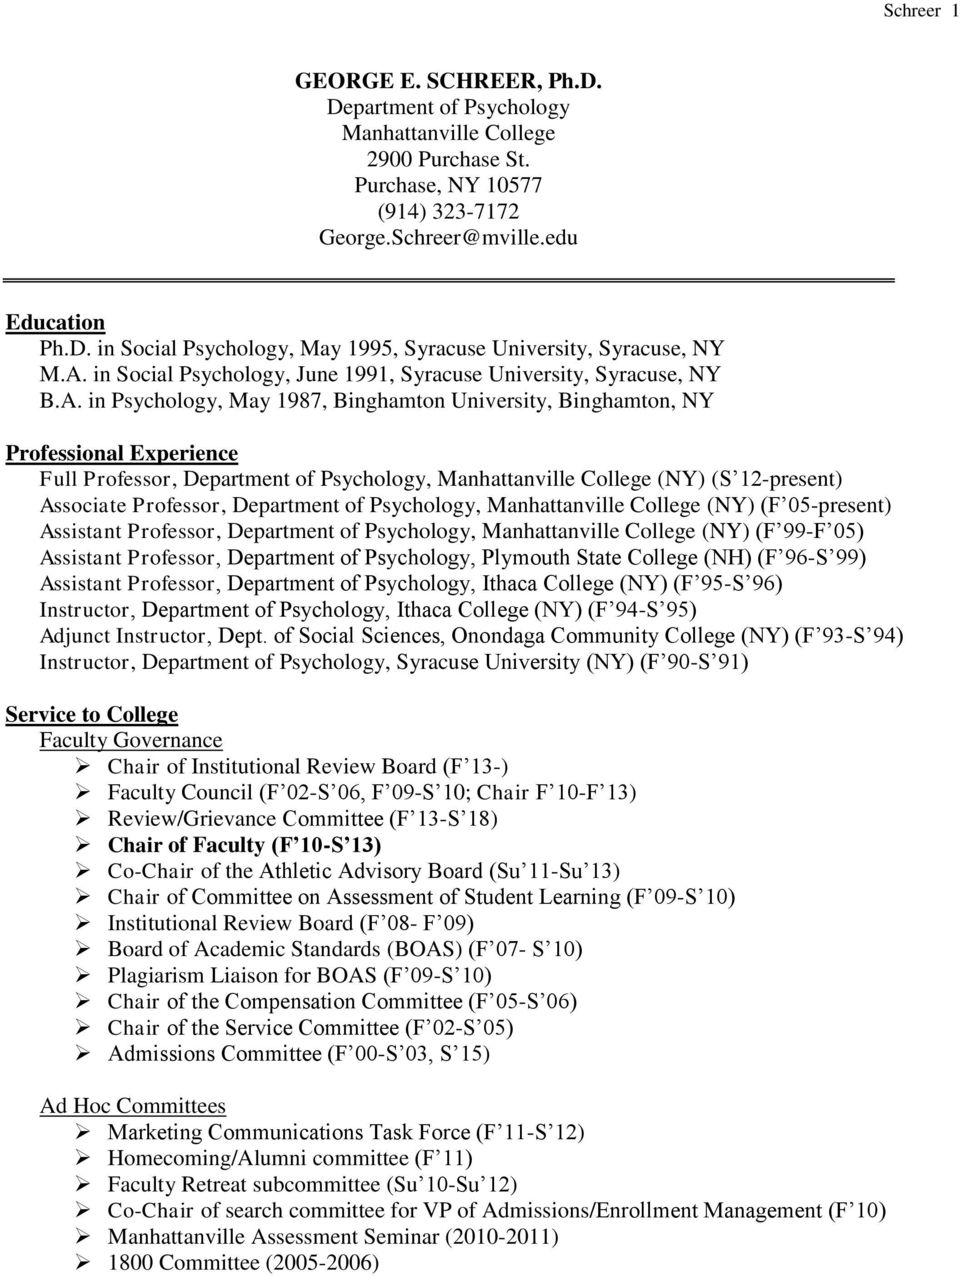 Psychology, Manhattanville College (NY) (S 12-present) Associate Professor, Department of Psychology, Manhattanville College (NY) (F 05-present) Assistant Professor, Department of Psychology,